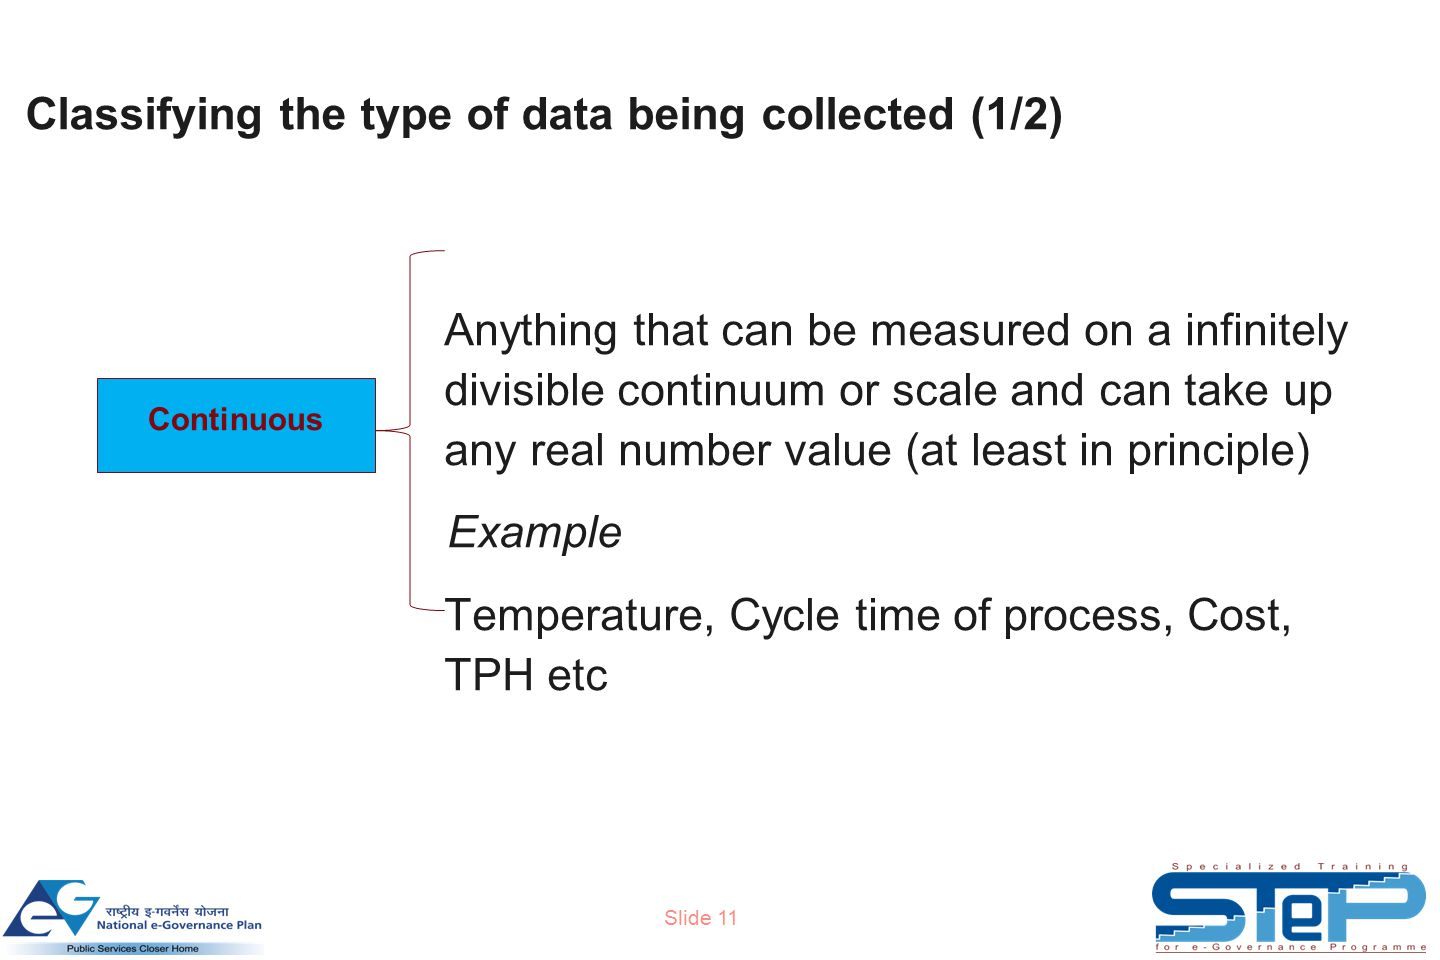 Slide 11 Classifying the type of data being collected (1/2) Anything that can be measured on a infinitely divisible continuum or scale and can take up any real number value (at least in principle) Example Temperature, Cycle time of process, Cost, TPH etc Continuous